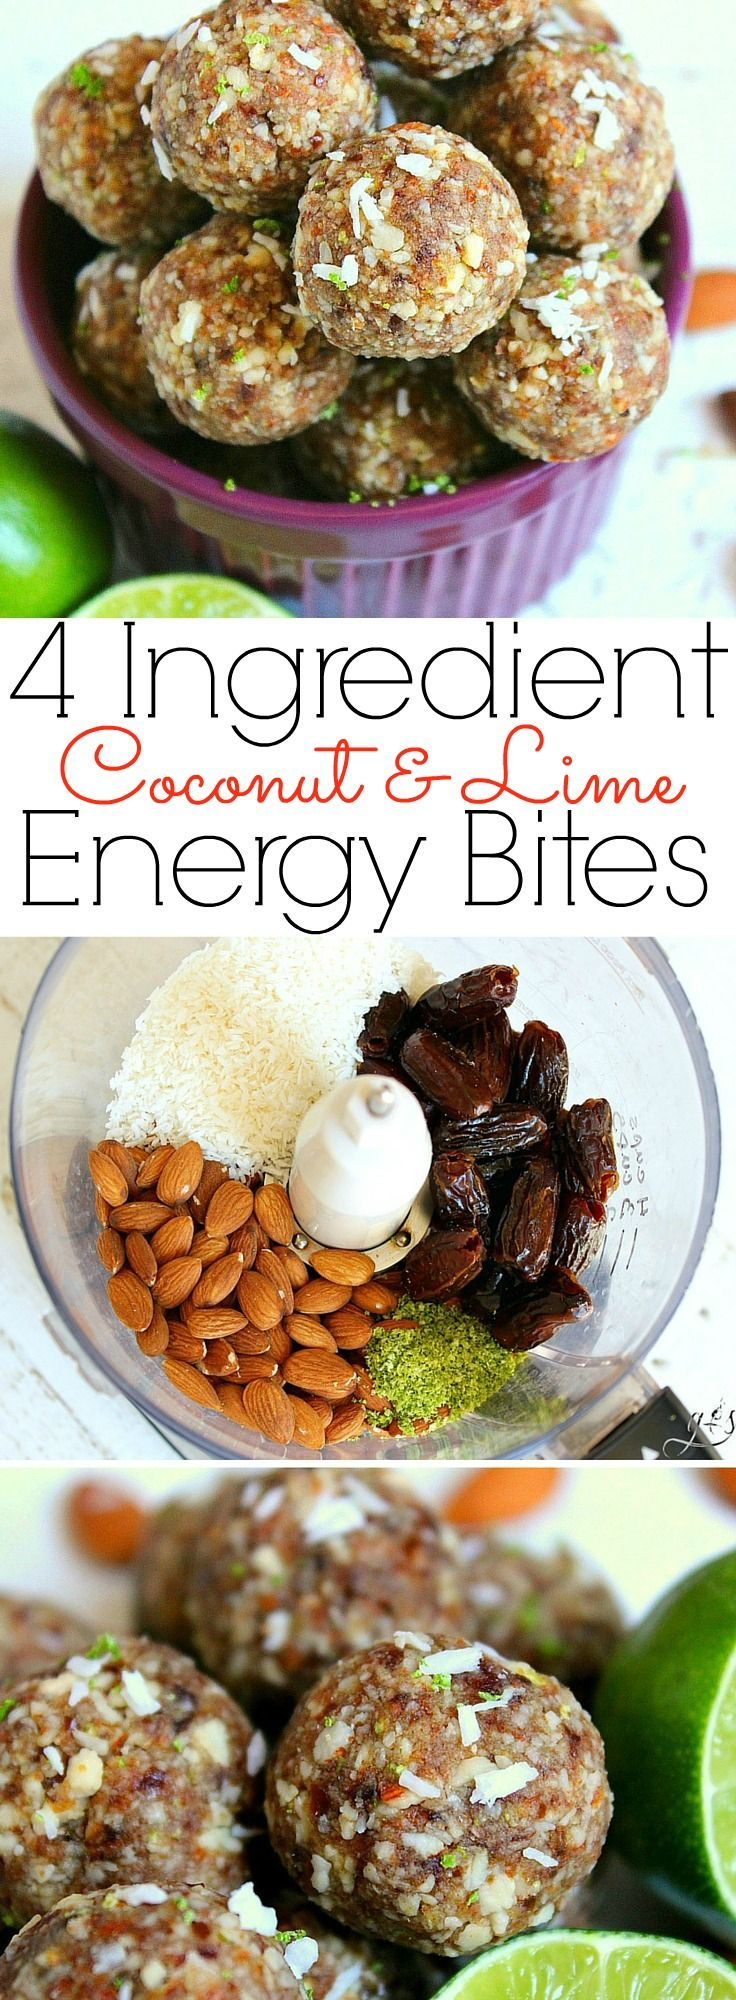 4 Ingredient Coconut Lime Energy Bites This easy no bake recipe will quickly become your favorite healthy snack especially during the hot summer months! Gluten-free dates, almonds, coconut, and lime combine to create a clean eating, Paleo, 21 Day Fix &